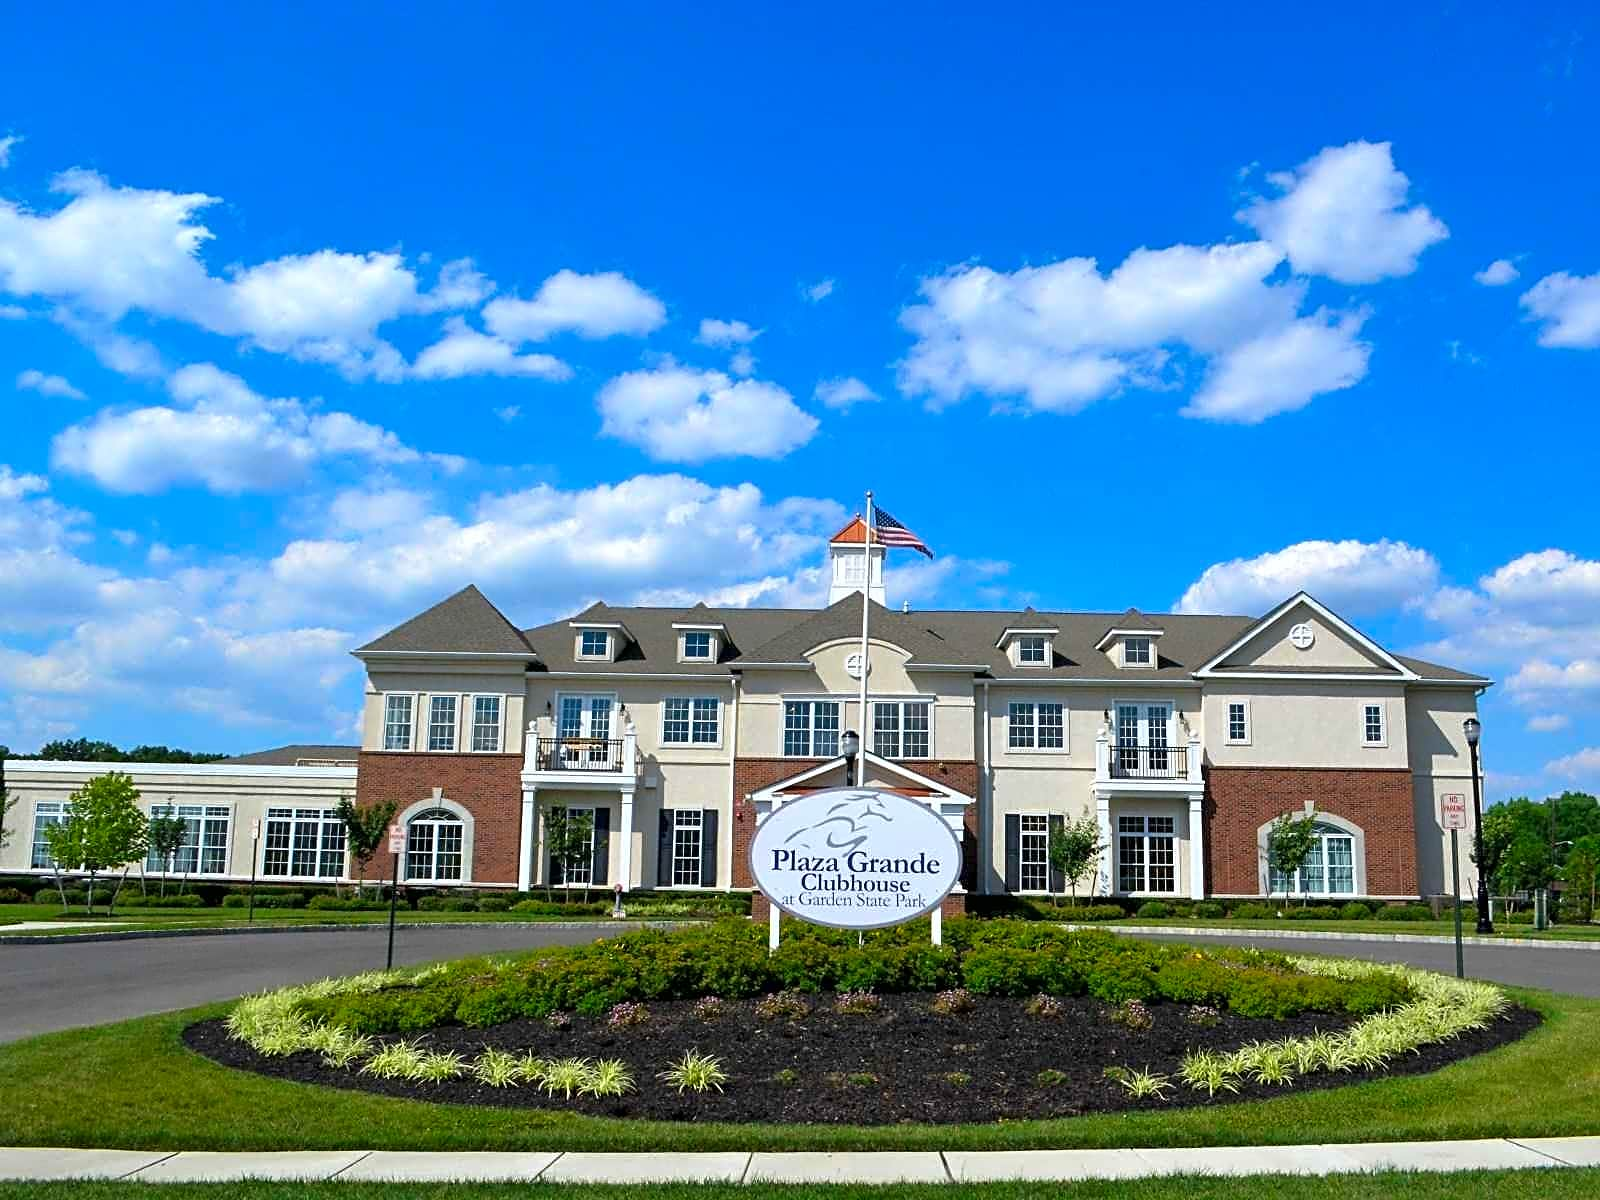 Delicieux The Plaza Grande At Garden State Park Is An Age Restricted Condominium  Community In Cherry Hill, Developed Specifically For Adults 55 And Better.